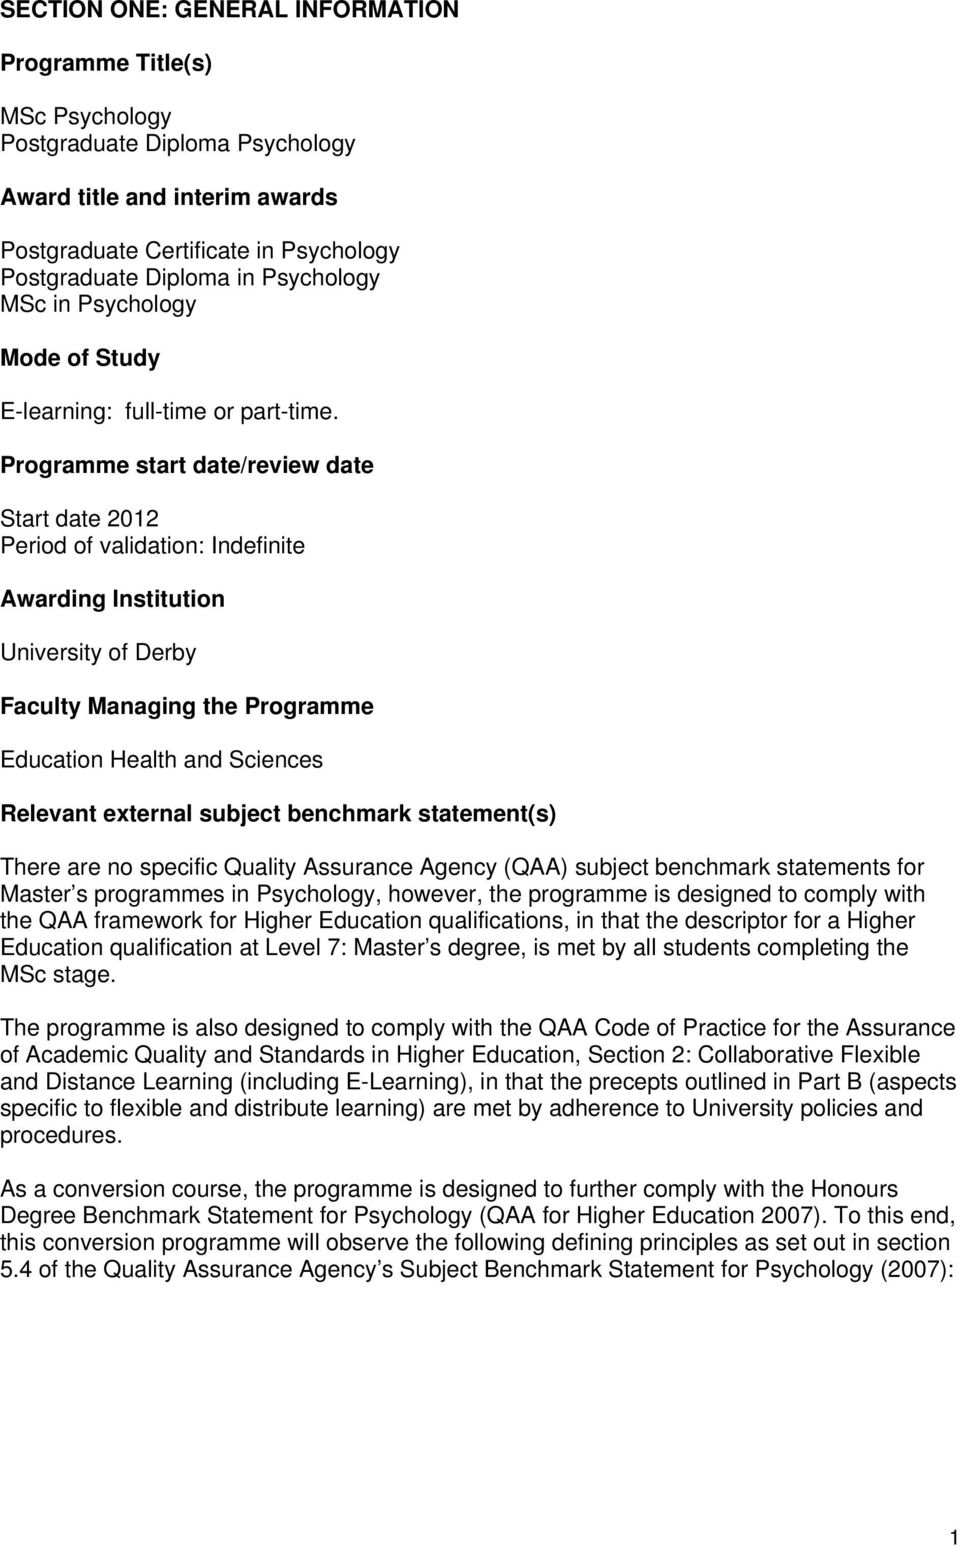 Programme start date/review date Start date 2012 Period of validation: Indefinite Awarding Institution University of Derby Faculty Managing the Programme Education Health and Sciences Relevant